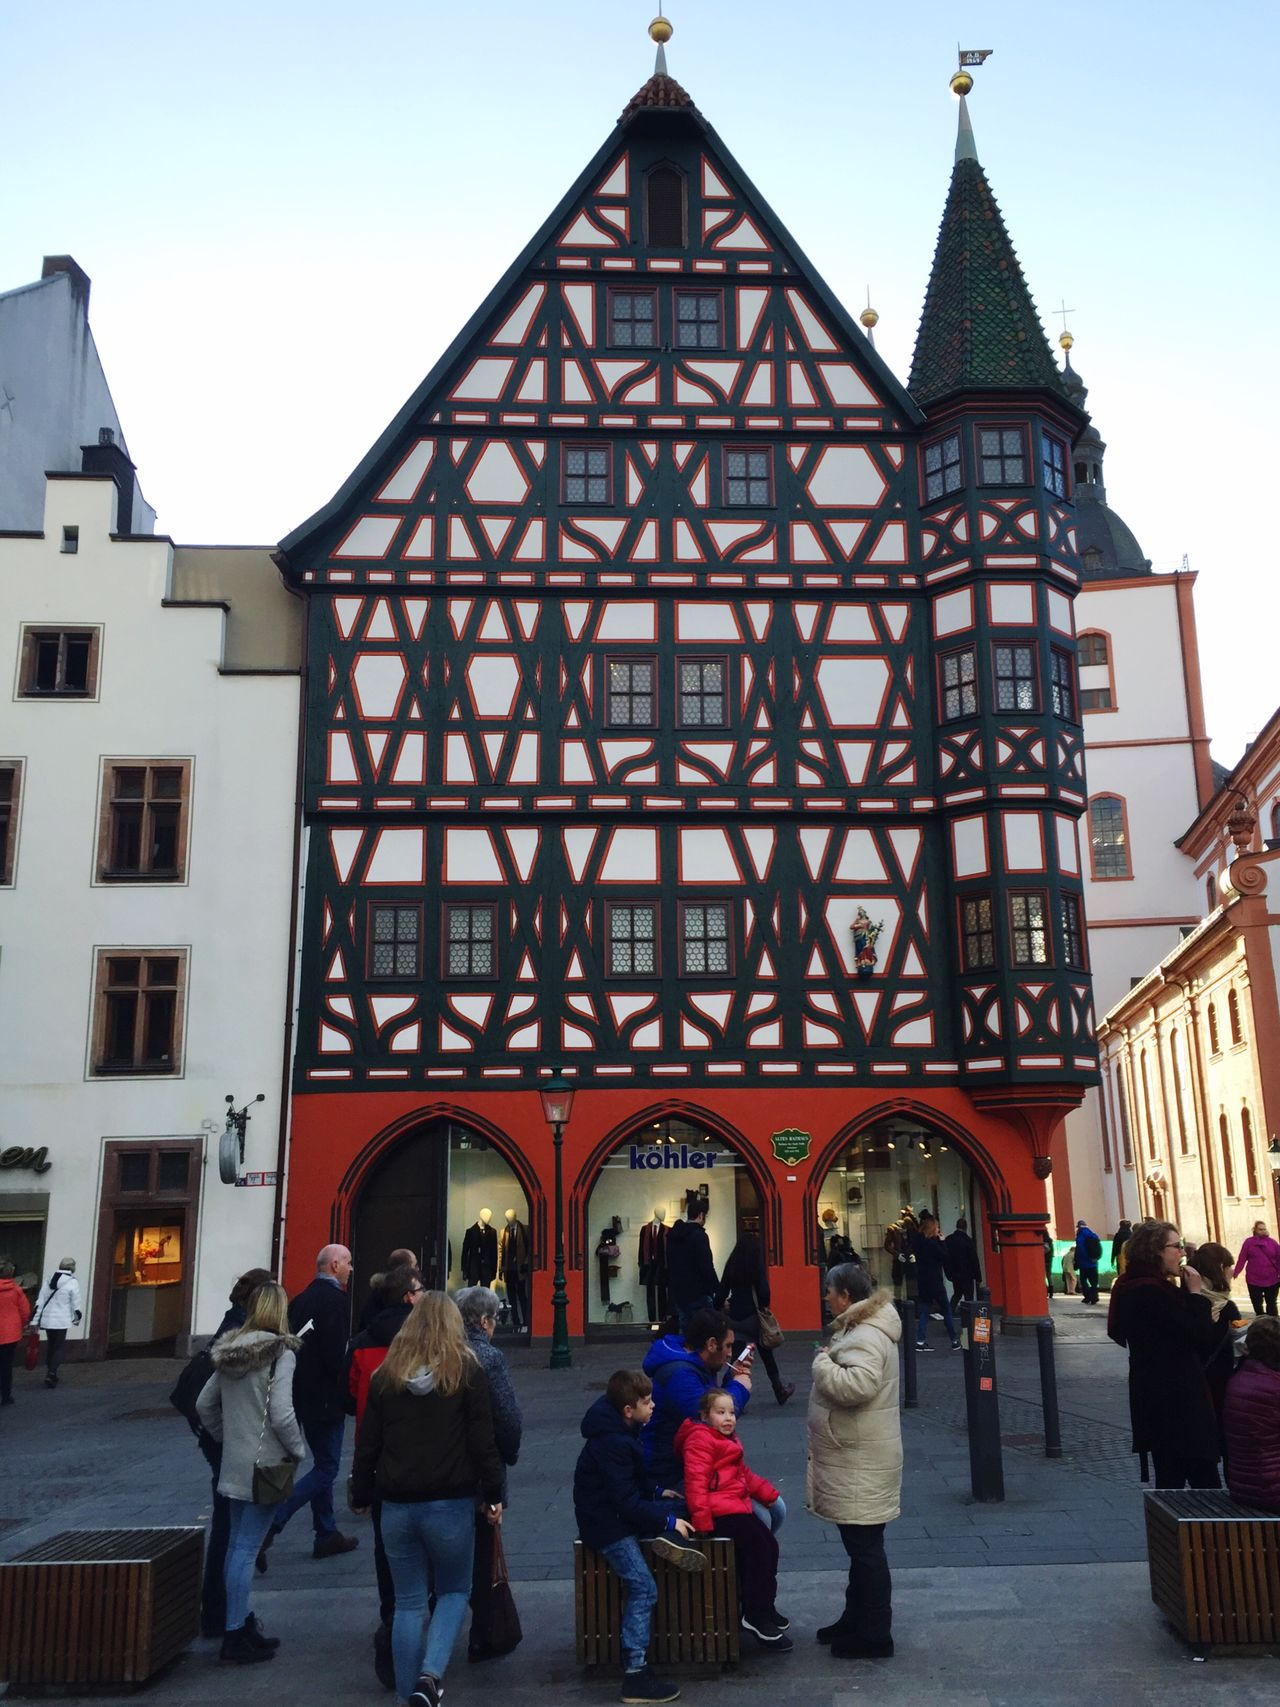 Fulda Barock Fachwerkhaus Half-timbered Half-timbered House Building Exterior Architecture Real People Built Structure Walking Outdoors Travel Destinations Large Group Of People Women Men City Sky Day People Adult